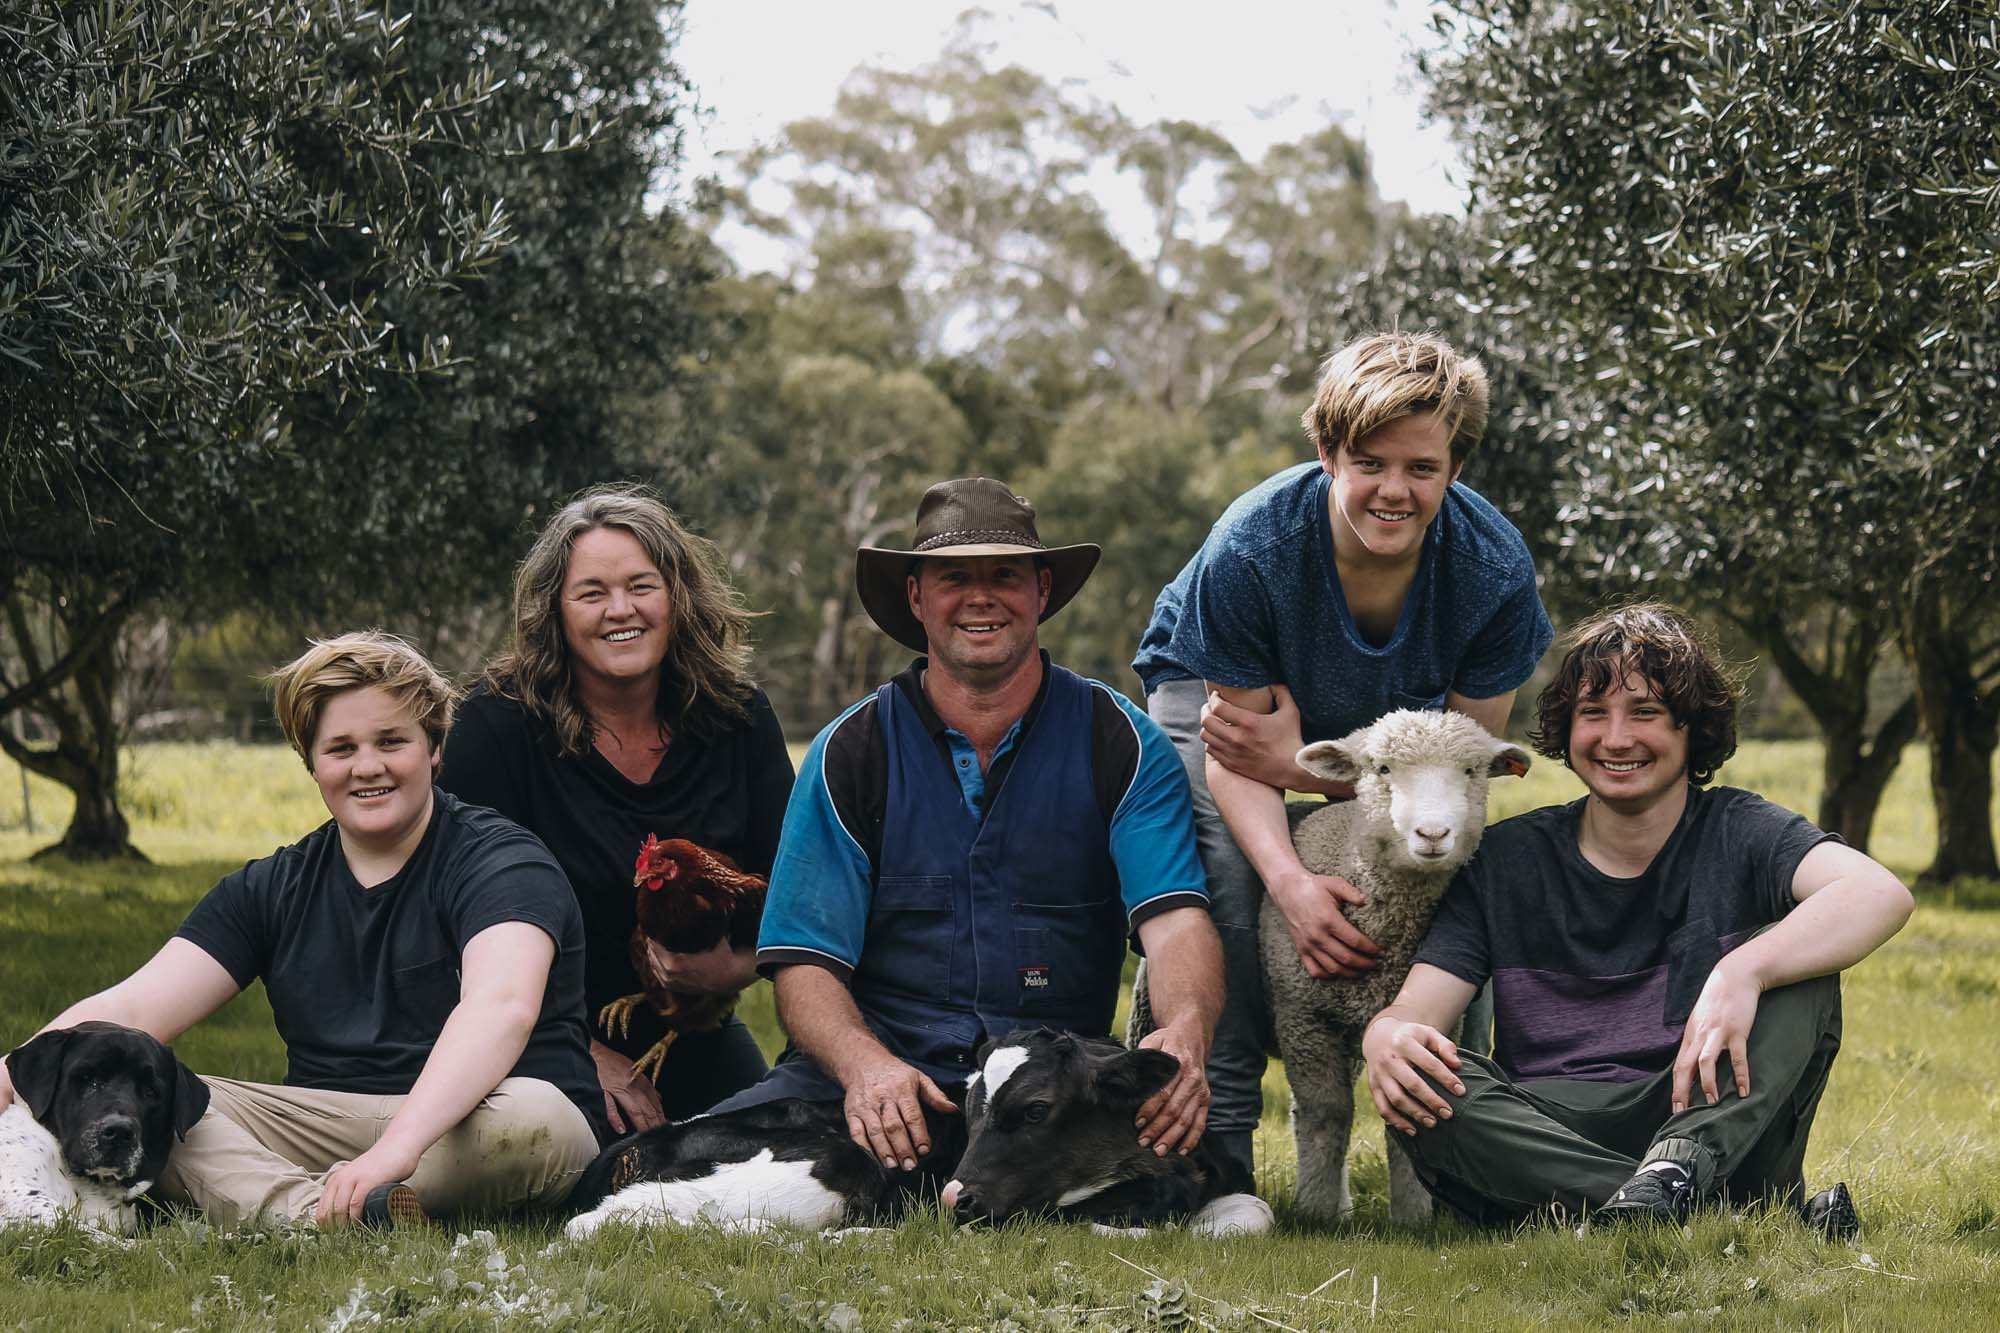 Marissa and Phillip with their three sons, Jack, Tom, Zeb and Charlie the dog.